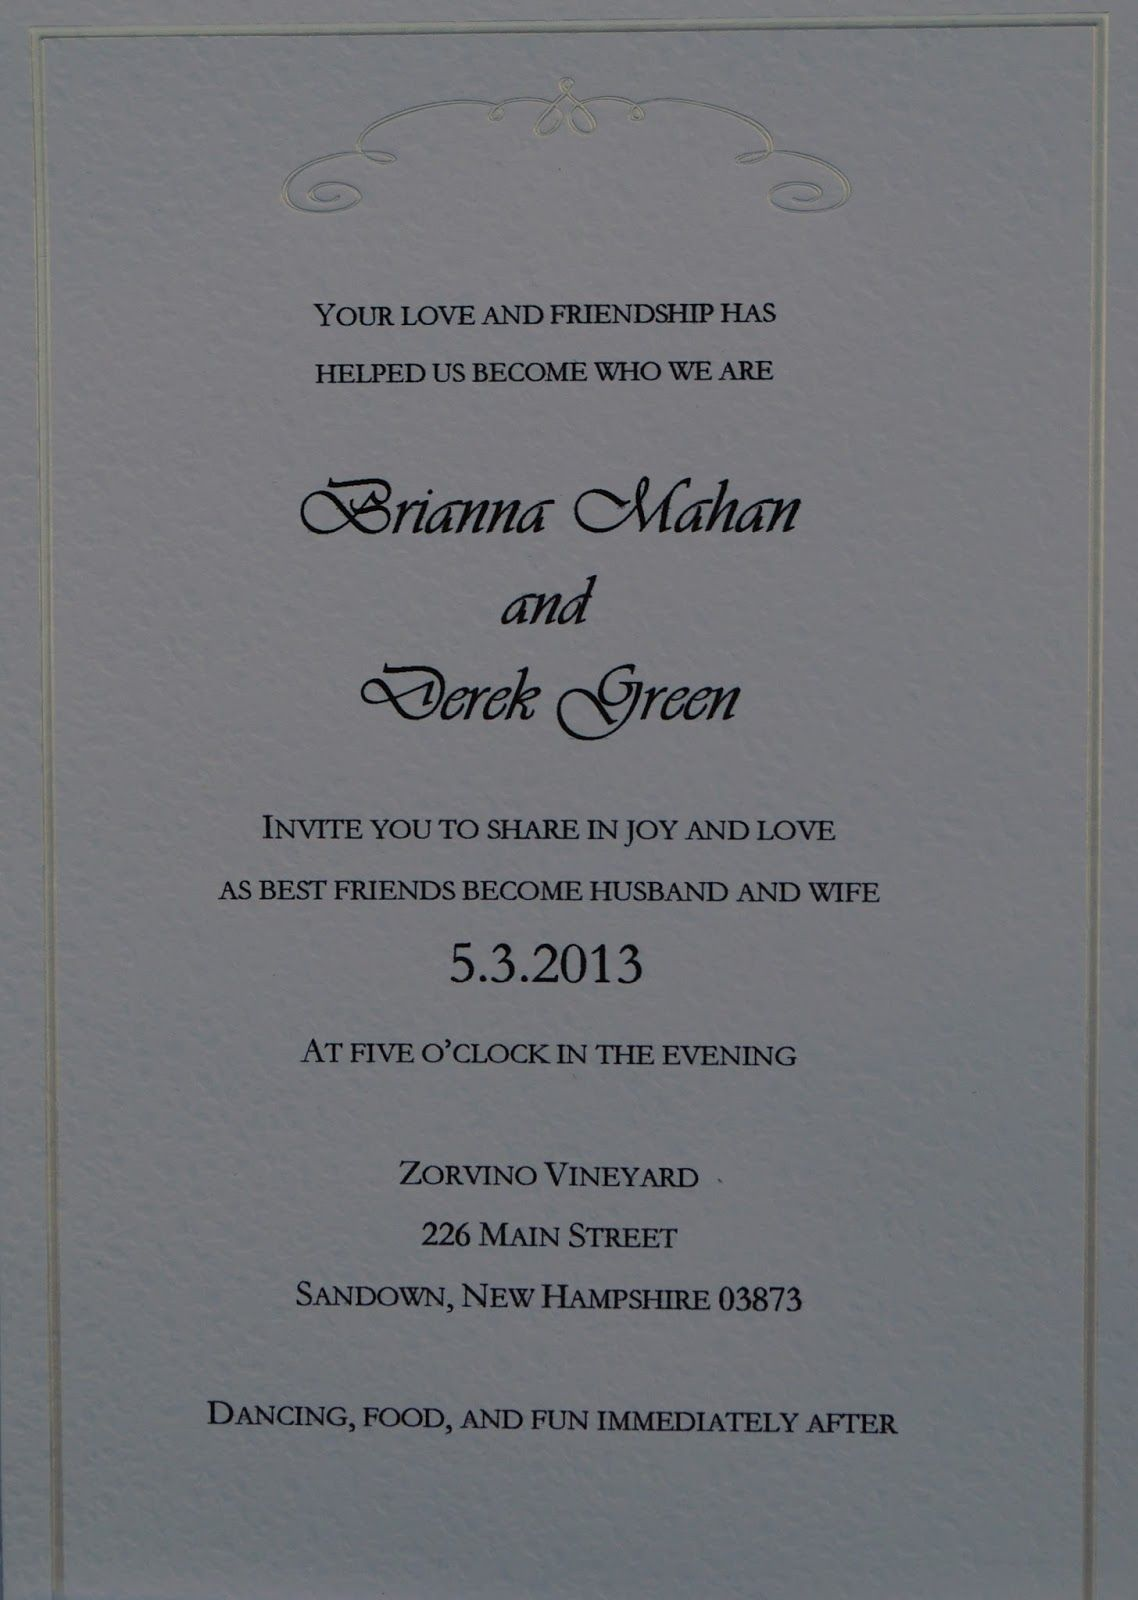 Wedding invitation wording Alternative wording options Wedding